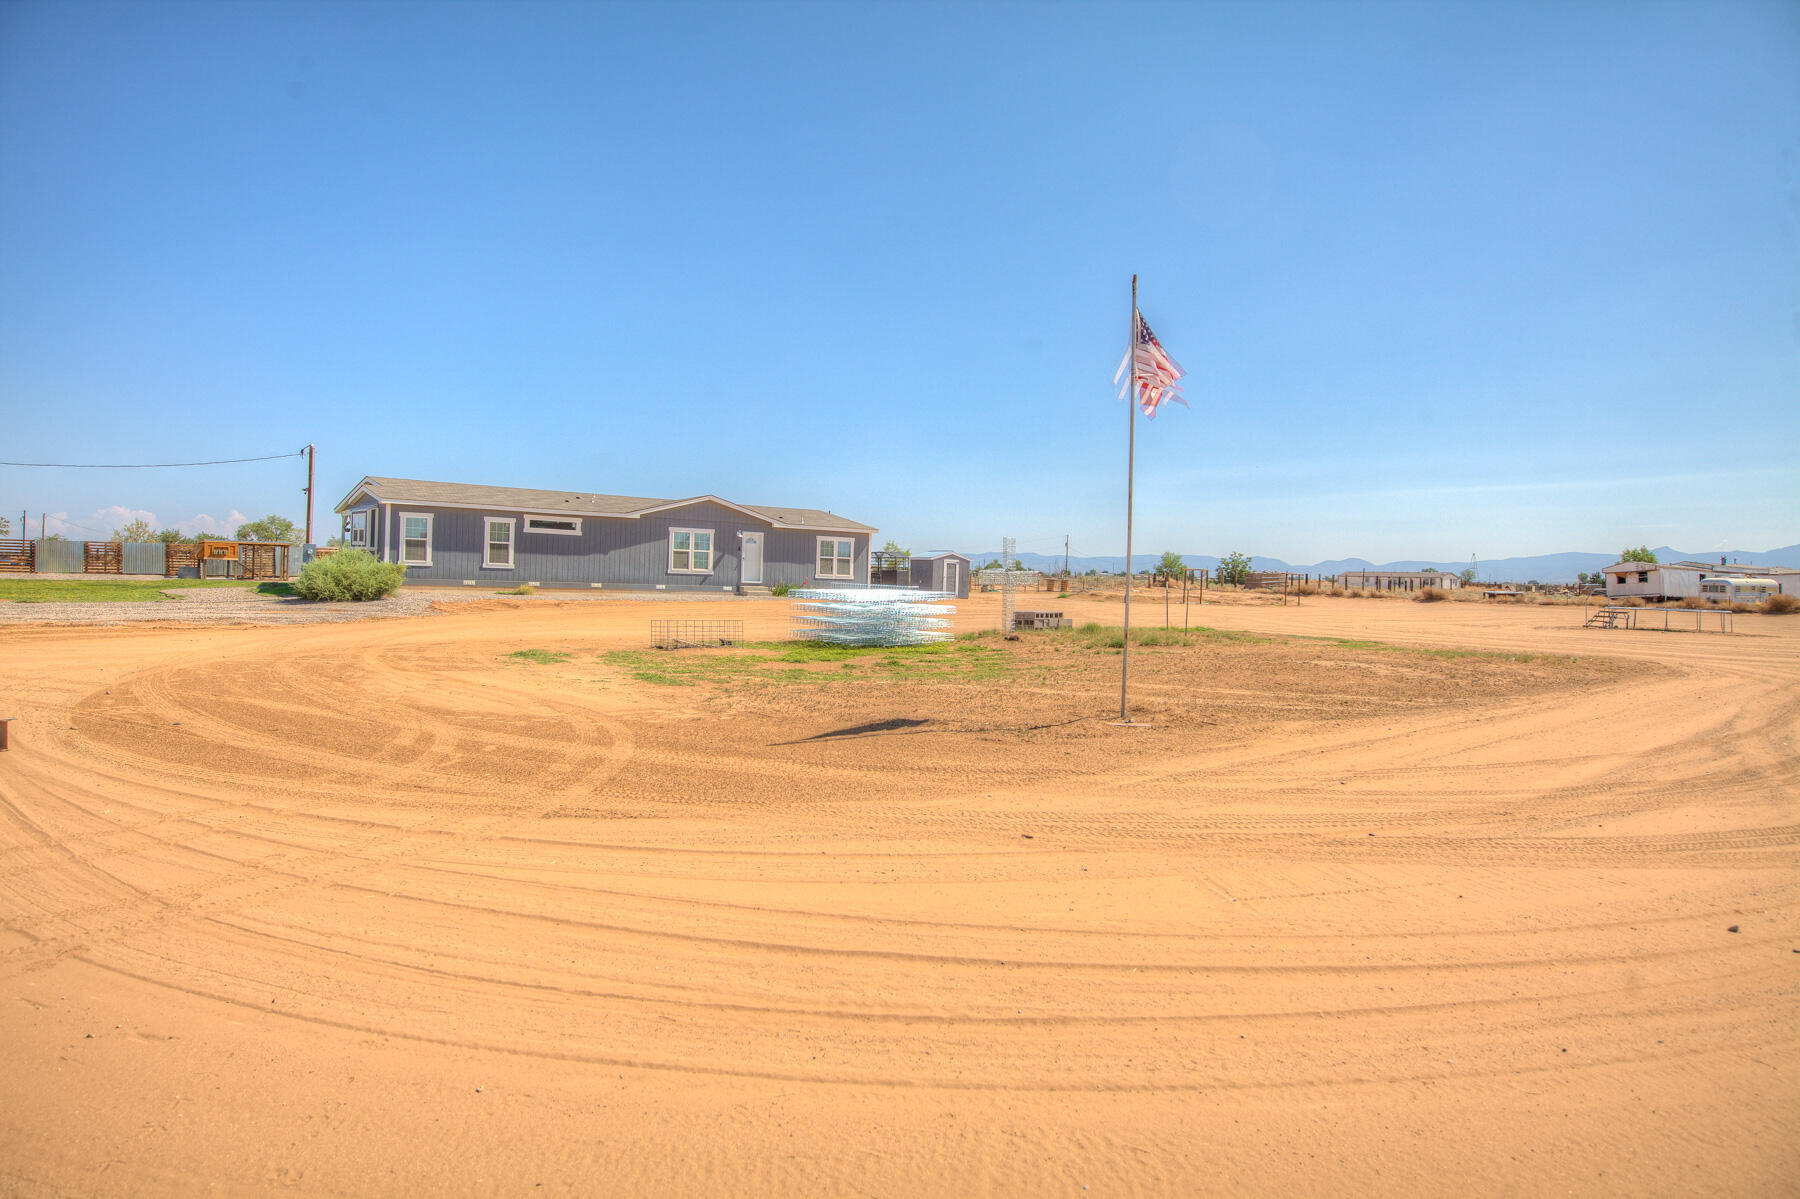 Enjoy this fully fenced and private with cattle gate at property entrance. Landscaped with a covered deck,custom chicken coops. Over sized large dog run.. Livestock pens a 16X32 cattle gate,2 pole barns a 16X16 and a 32X40 gate dual lofted barn. This home also has a new septic,New pump house plus storage. Home has recently had a new power pole installed by PNM. New refrigerated A/C. Inside enjoy the stylish Farm House look. Over sized owners suite with spa like bath with spa tub and seprate shower, private commode room.Split floor plan master is seprate from secondary bedrooms. All bedrooms have oversized closets.Large great room plus added family dining room.Oversized pantry and utility room.  Beautiful lighting package to include chandeliers and recessed lighting make this a must see..